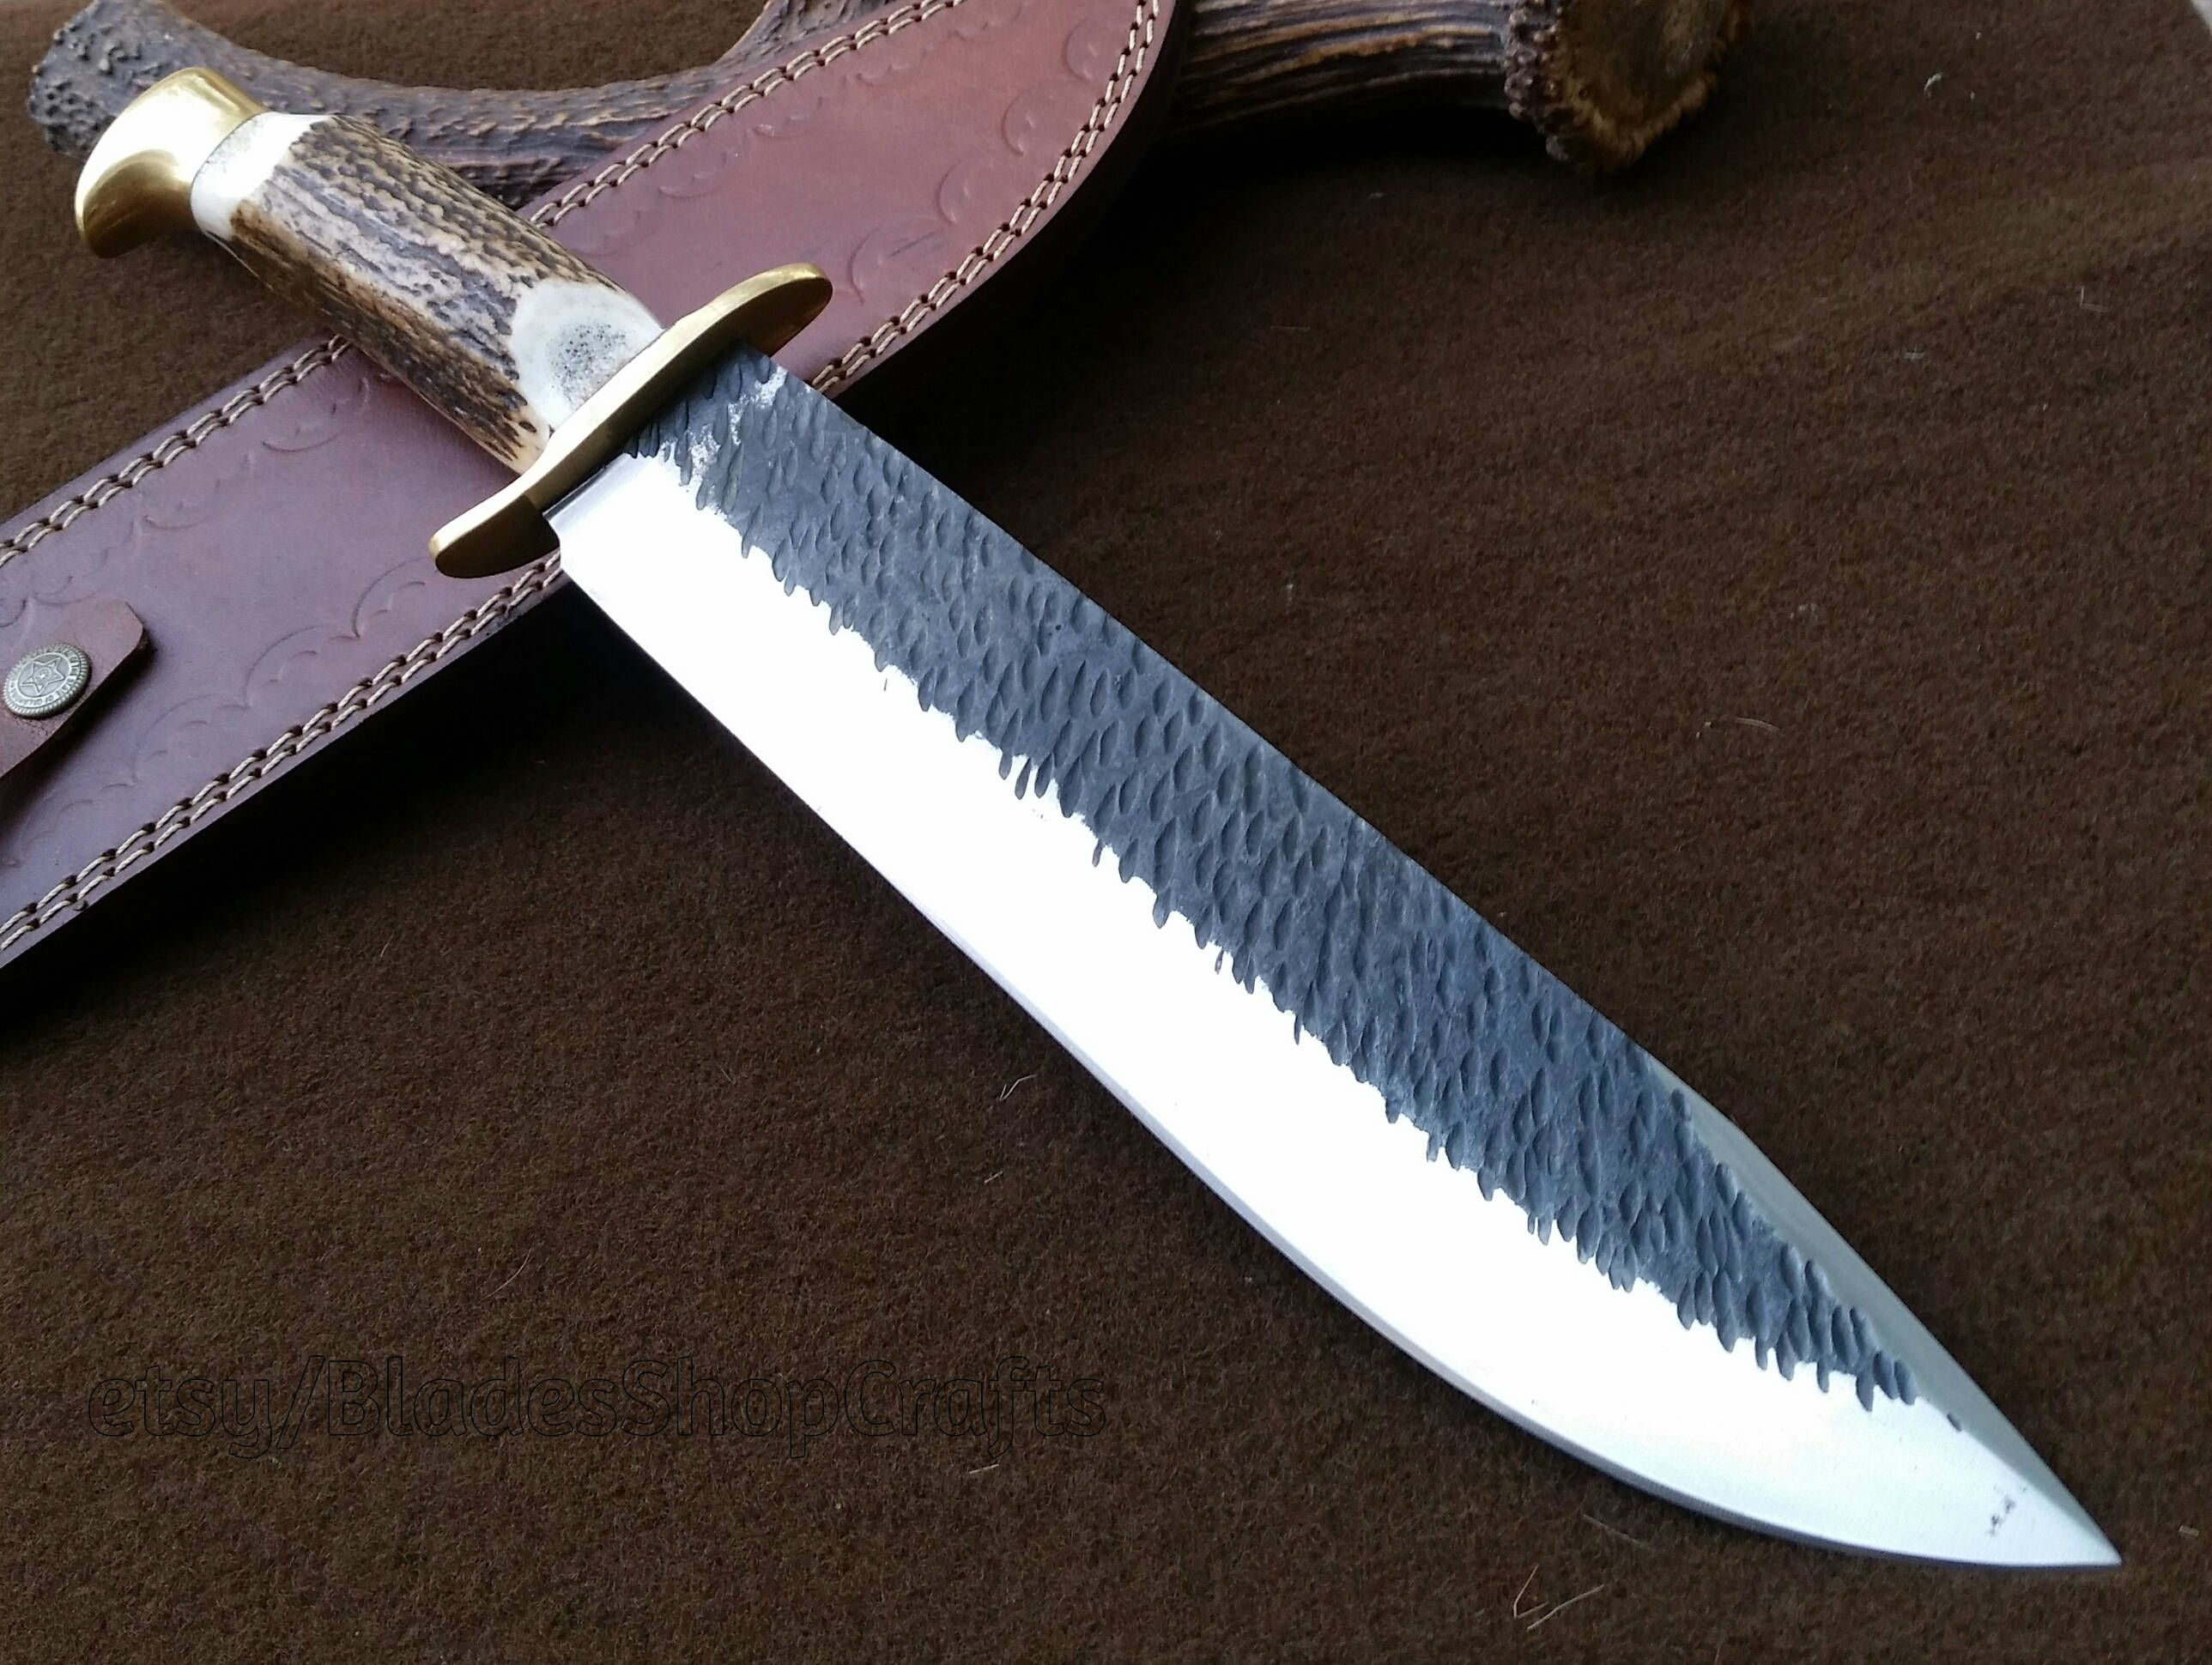 16 Big Bowie Custom Made 1095 Steel Forged Blade Stag Horn Hunting Bowie Knife By Ag Bowie Knife Knife 1095 Steel